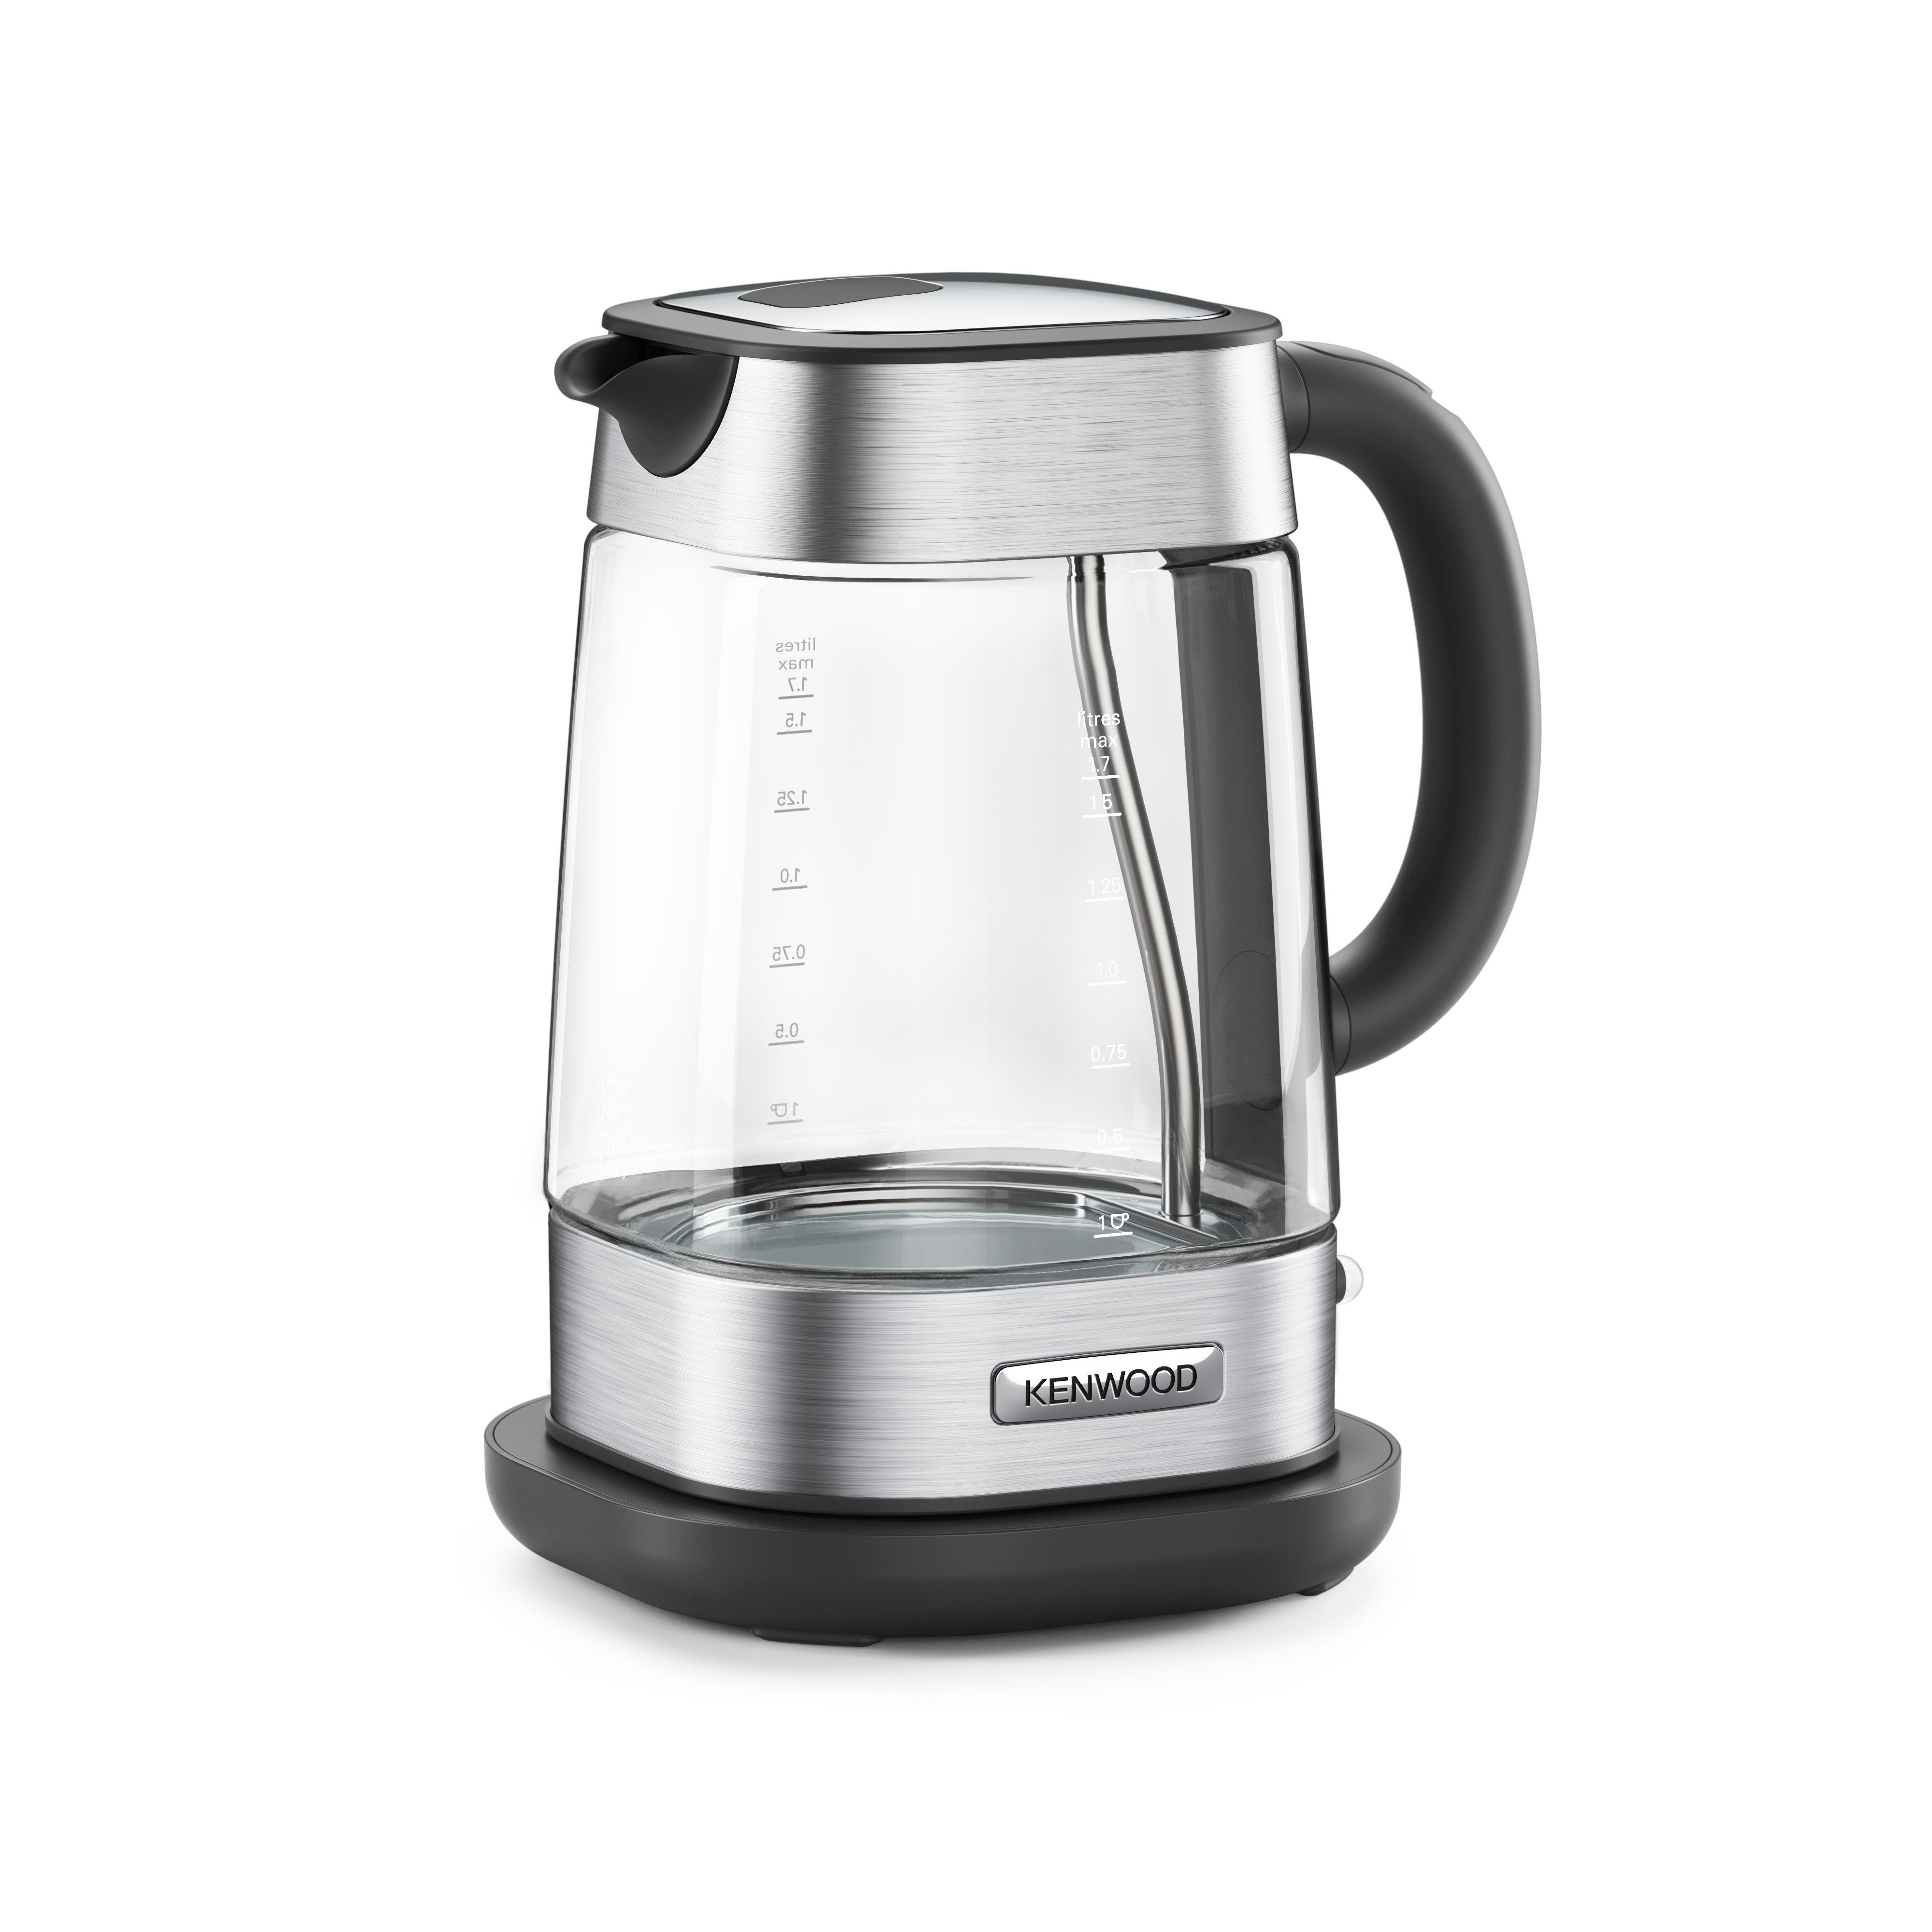 Kenwood Kettle Shop For Cheap Electric Kettles And Save